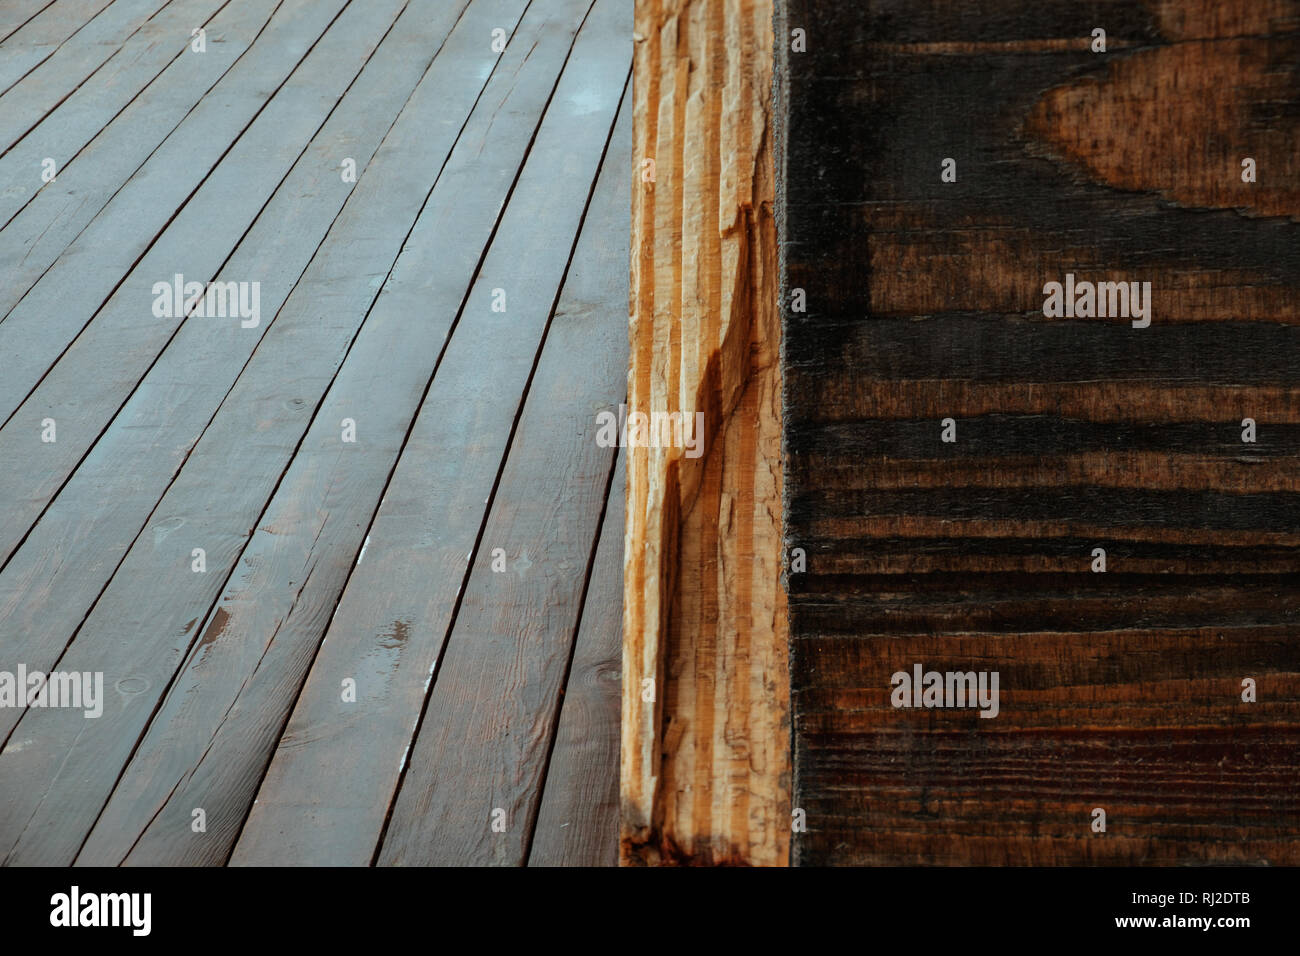 Wet brown wooden wall and floor, wooden texture background Stock Photo